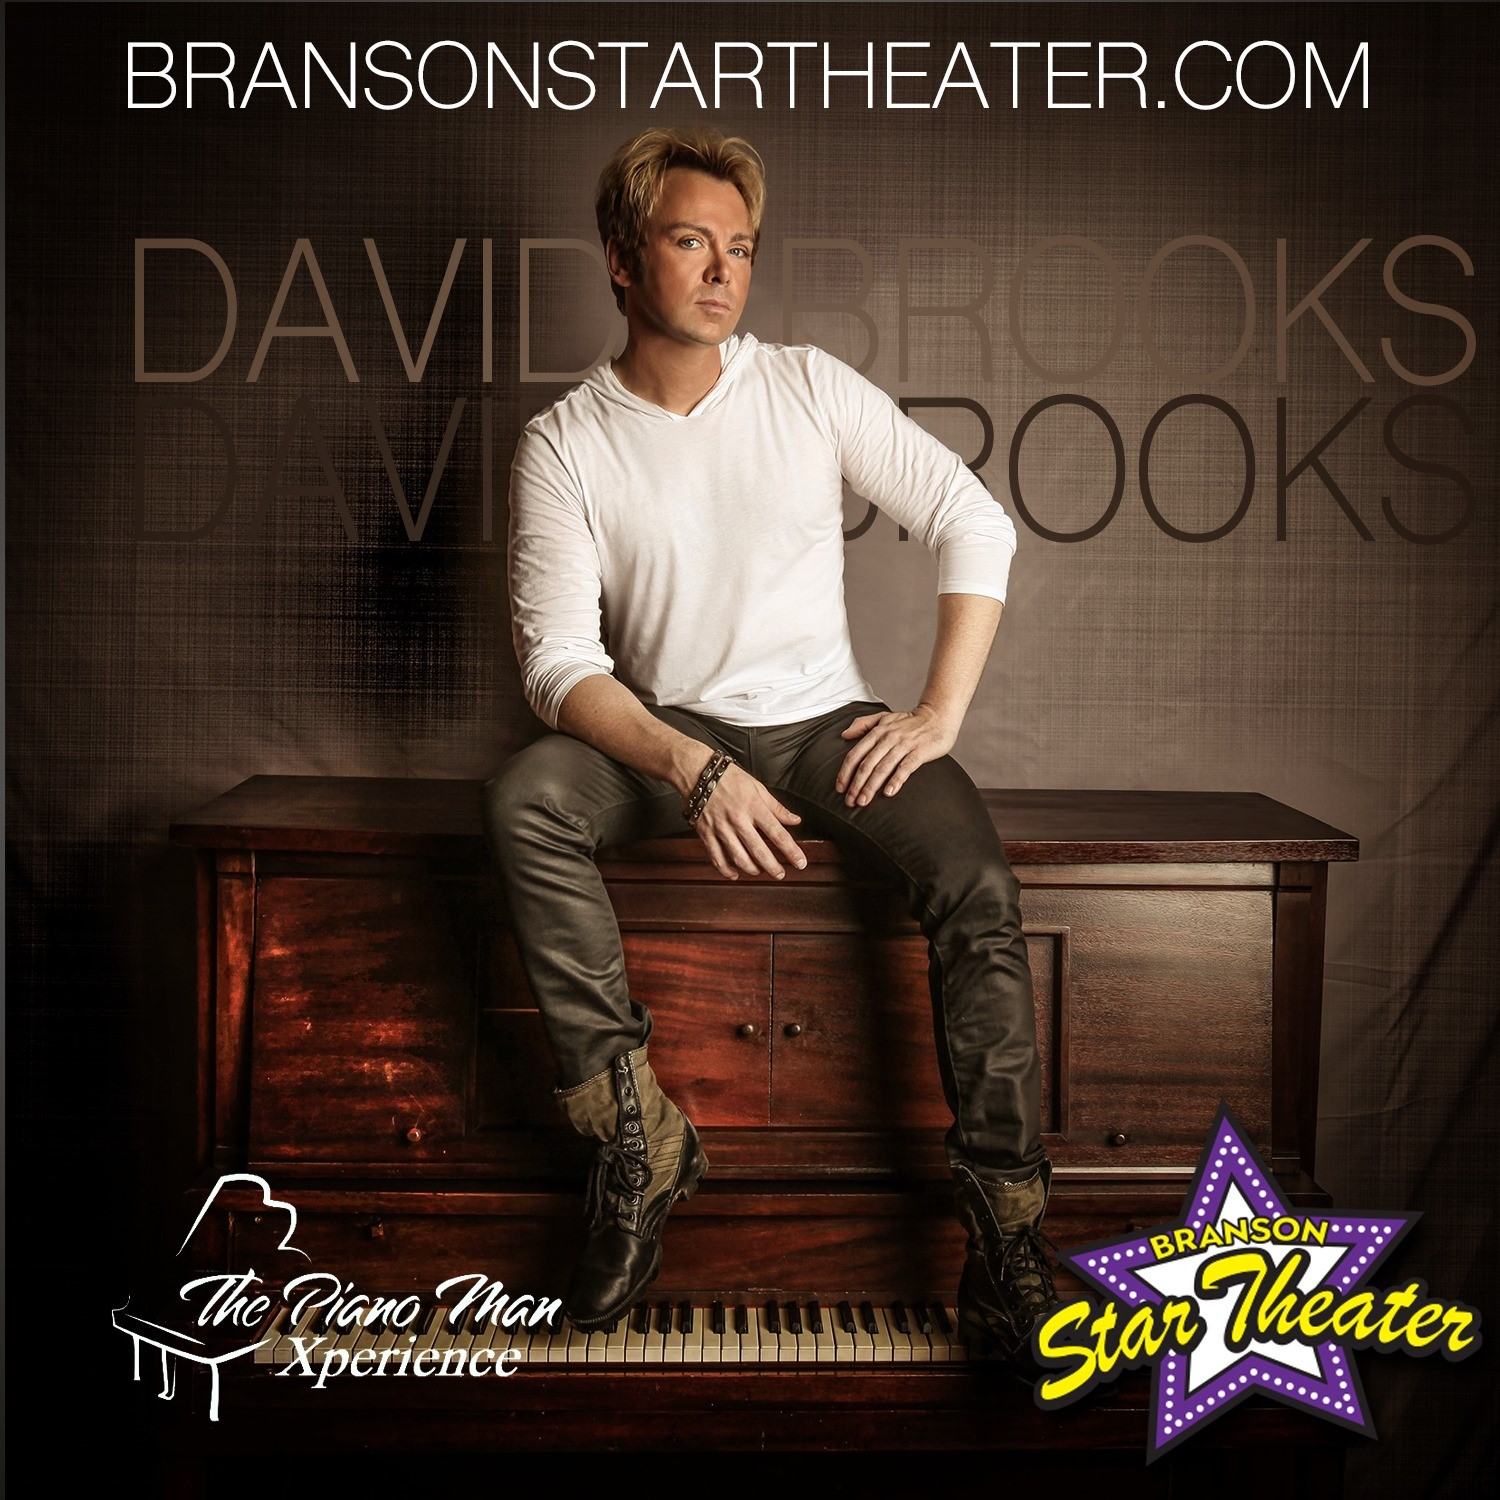 David Brooks Piano Man Experience  on Jul 27, 00:00@The Branson Star Theater - Pick a seat, Buy tickets and Get information on The Branson Star Theater